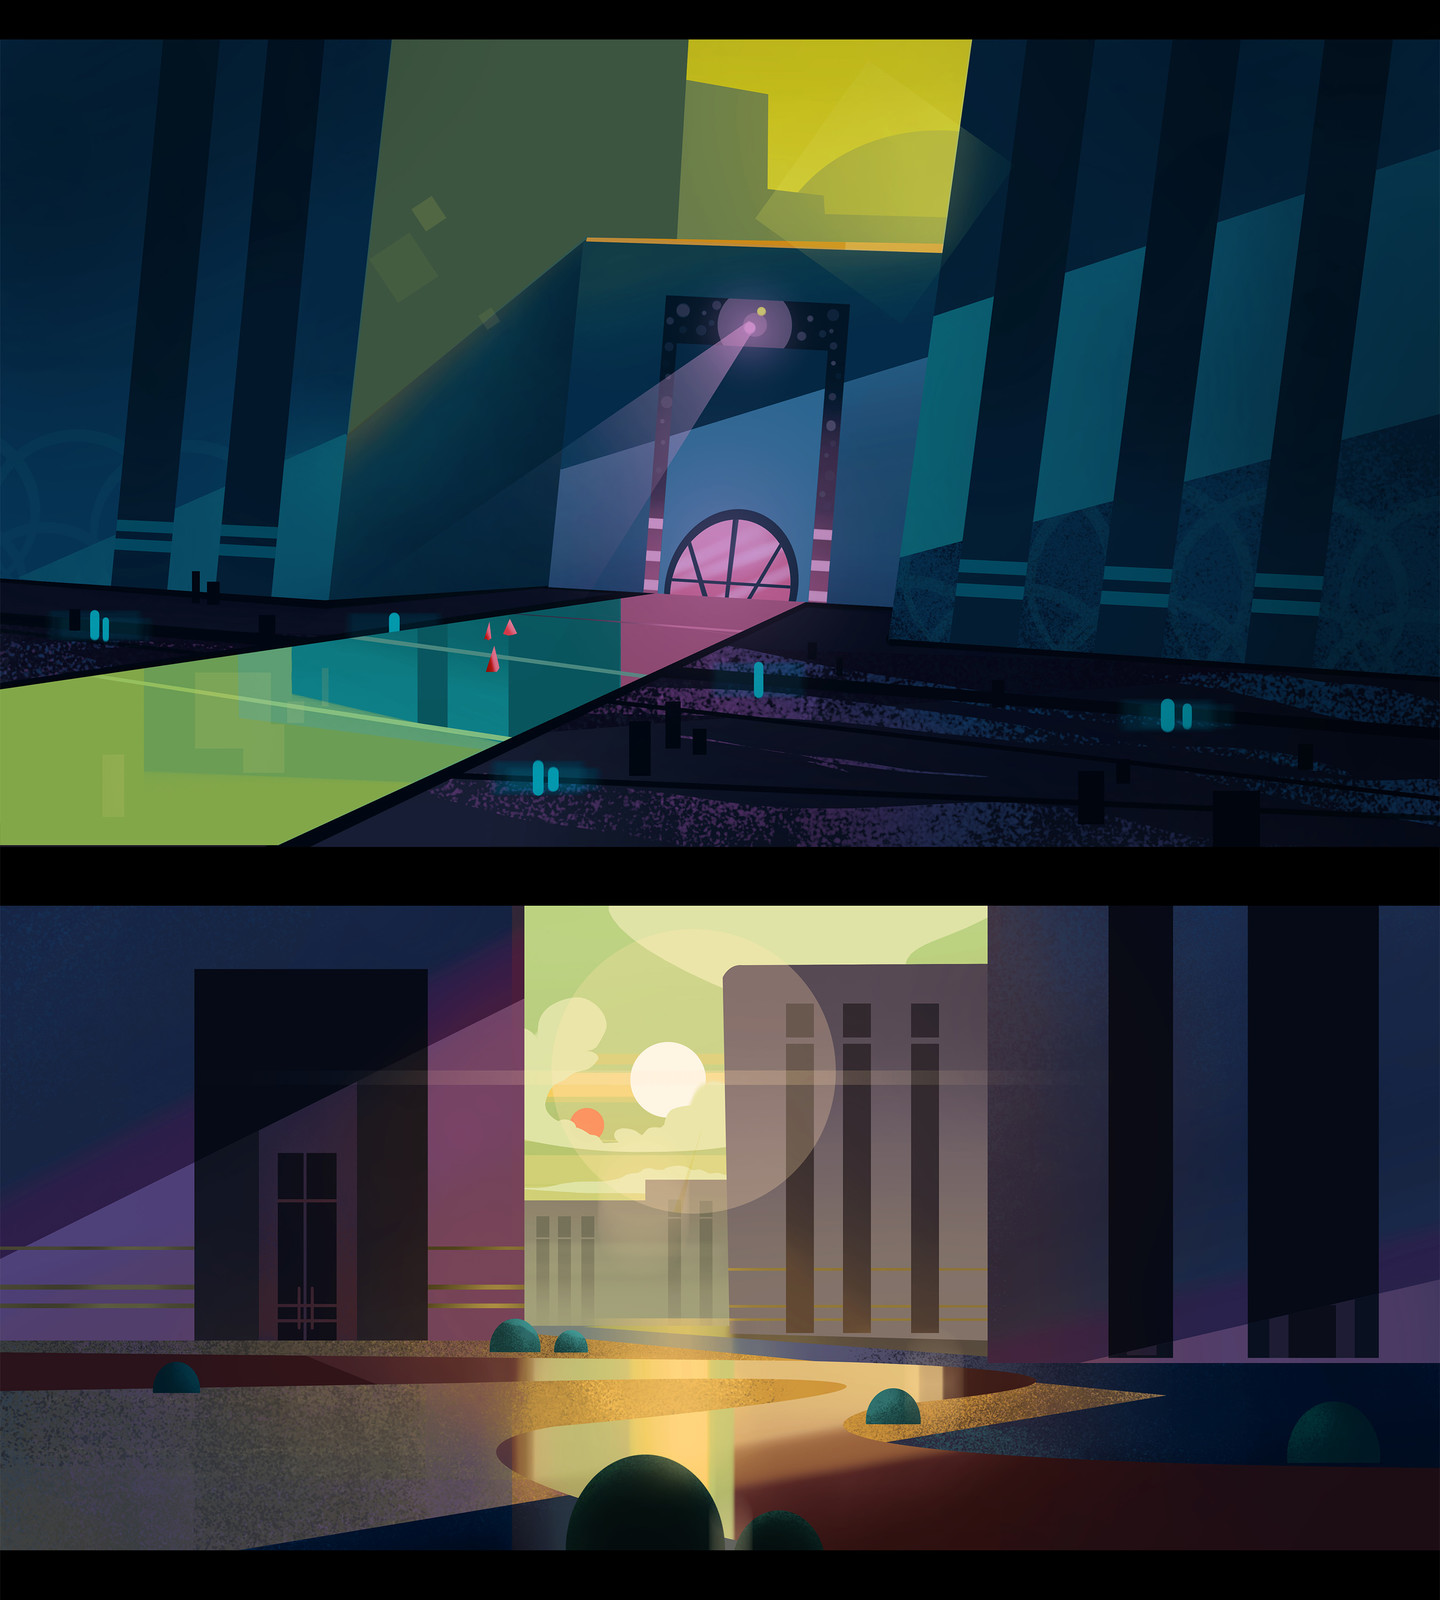 Graphic Environments